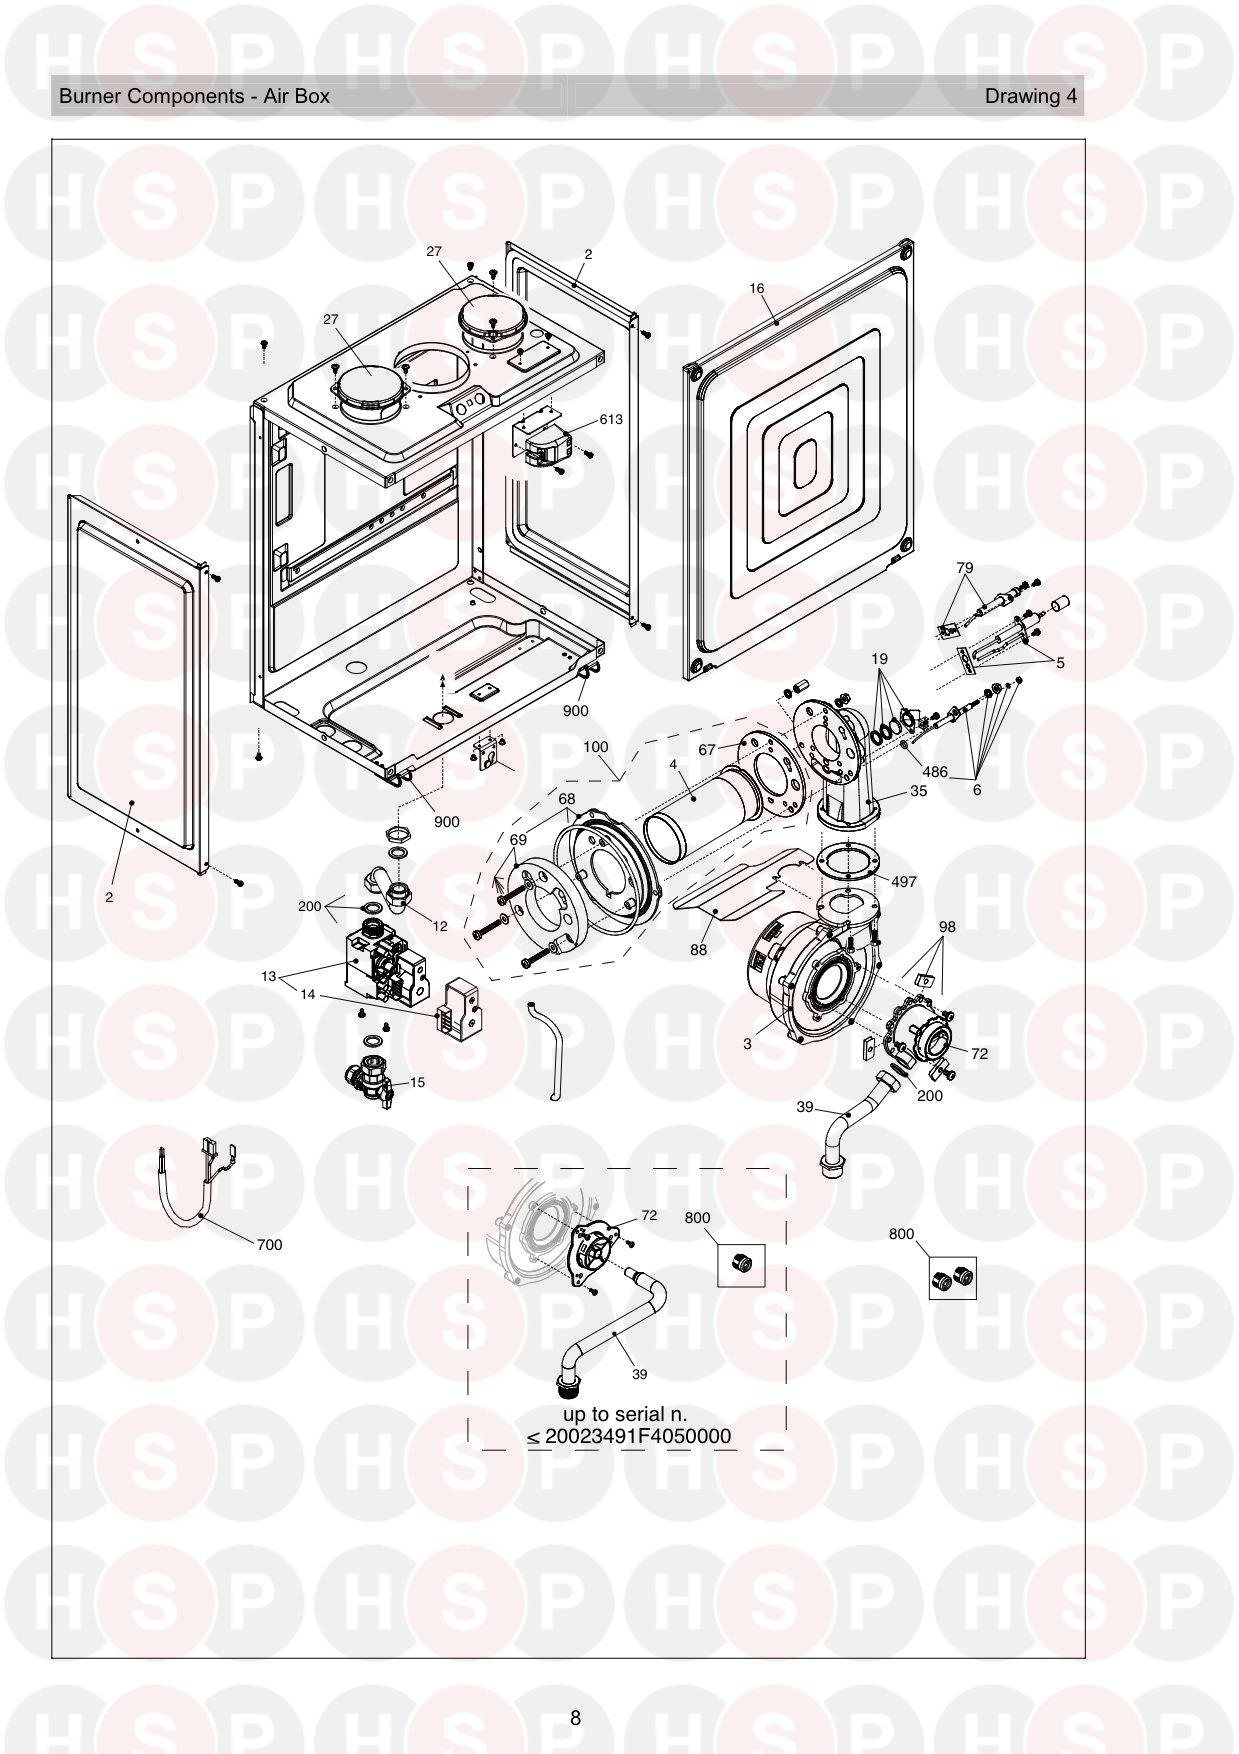 Burner Air Box diagram for Vokera Linea One ERP Rev 13 (02/2017)